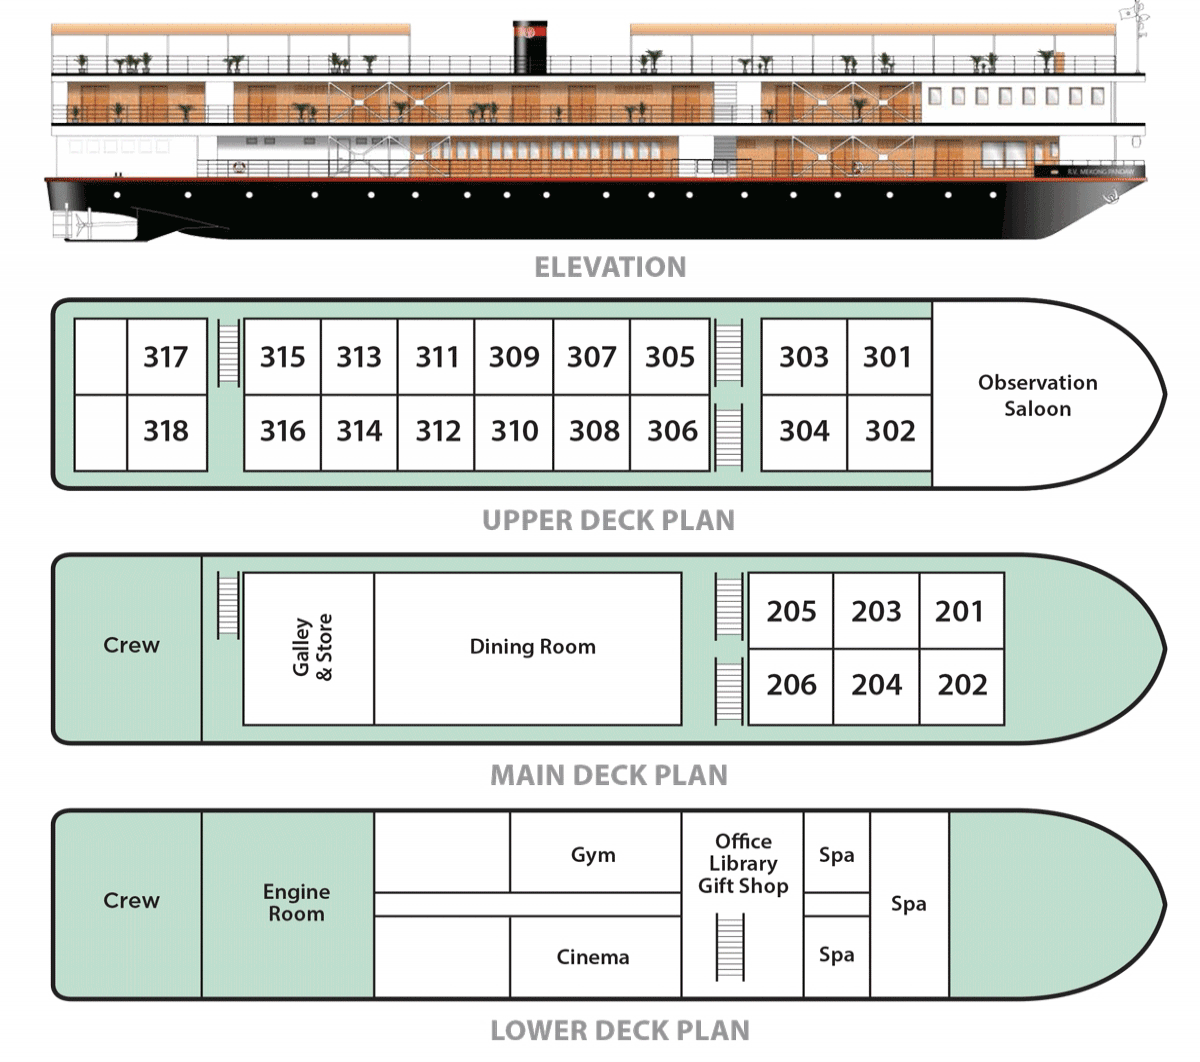 RV Mekong Pandaw - Deck Plan